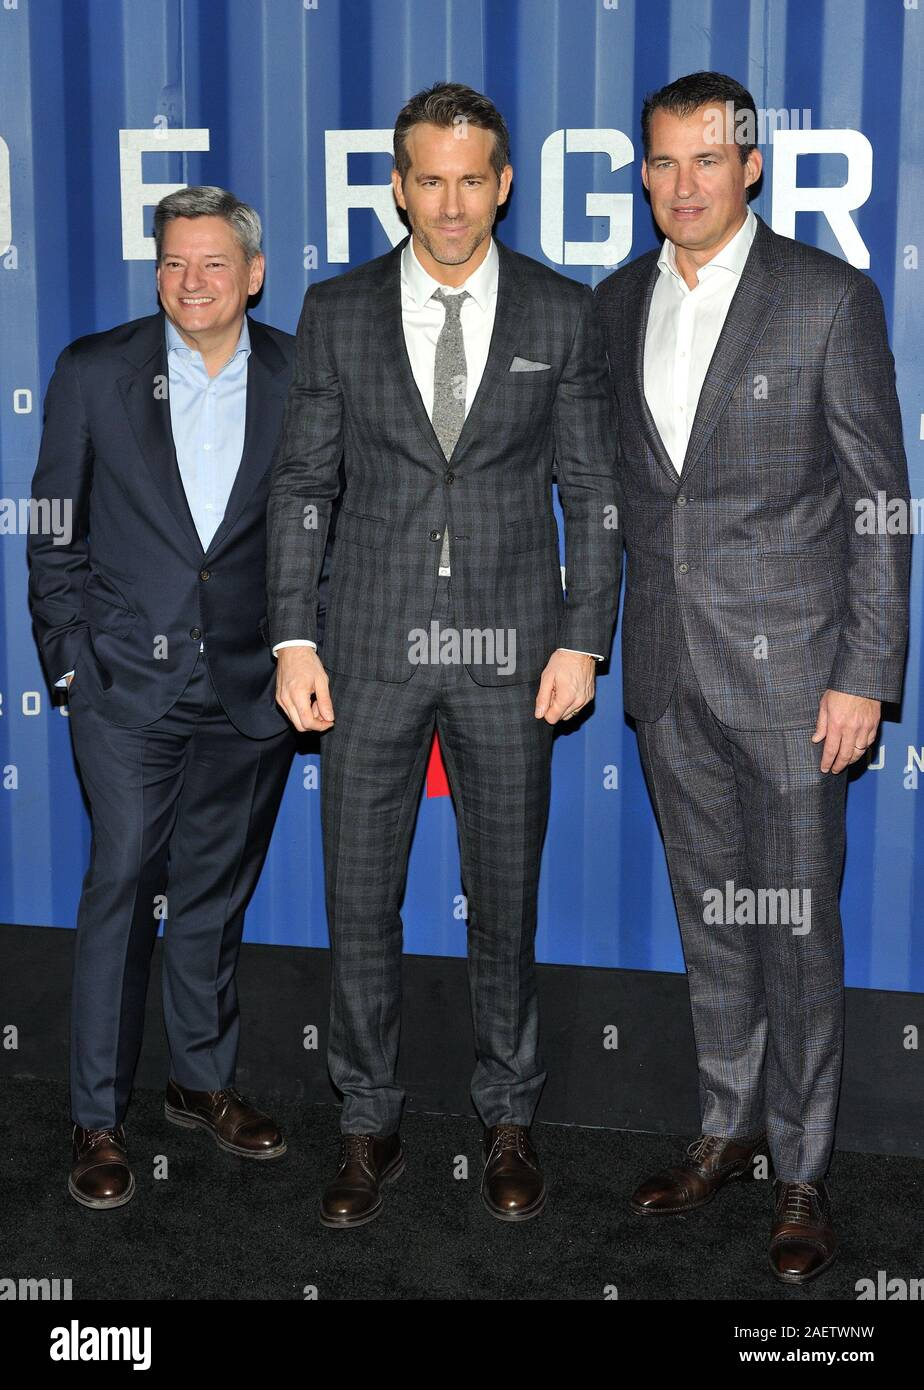 New York, USA. 10th Dec, 2019. L-R: Netflix exec Ted Sarandos, actor Ryan Reynolds and Netflix exec Scott Stuber attend the NY premiere of 6 Underground at The Shed at Hudson Yards in New York, NY on December 10, 2019. (Photo by Stephen Smith/SIPA USA) Credit: Sipa USA/Alamy Live News Stock Photo